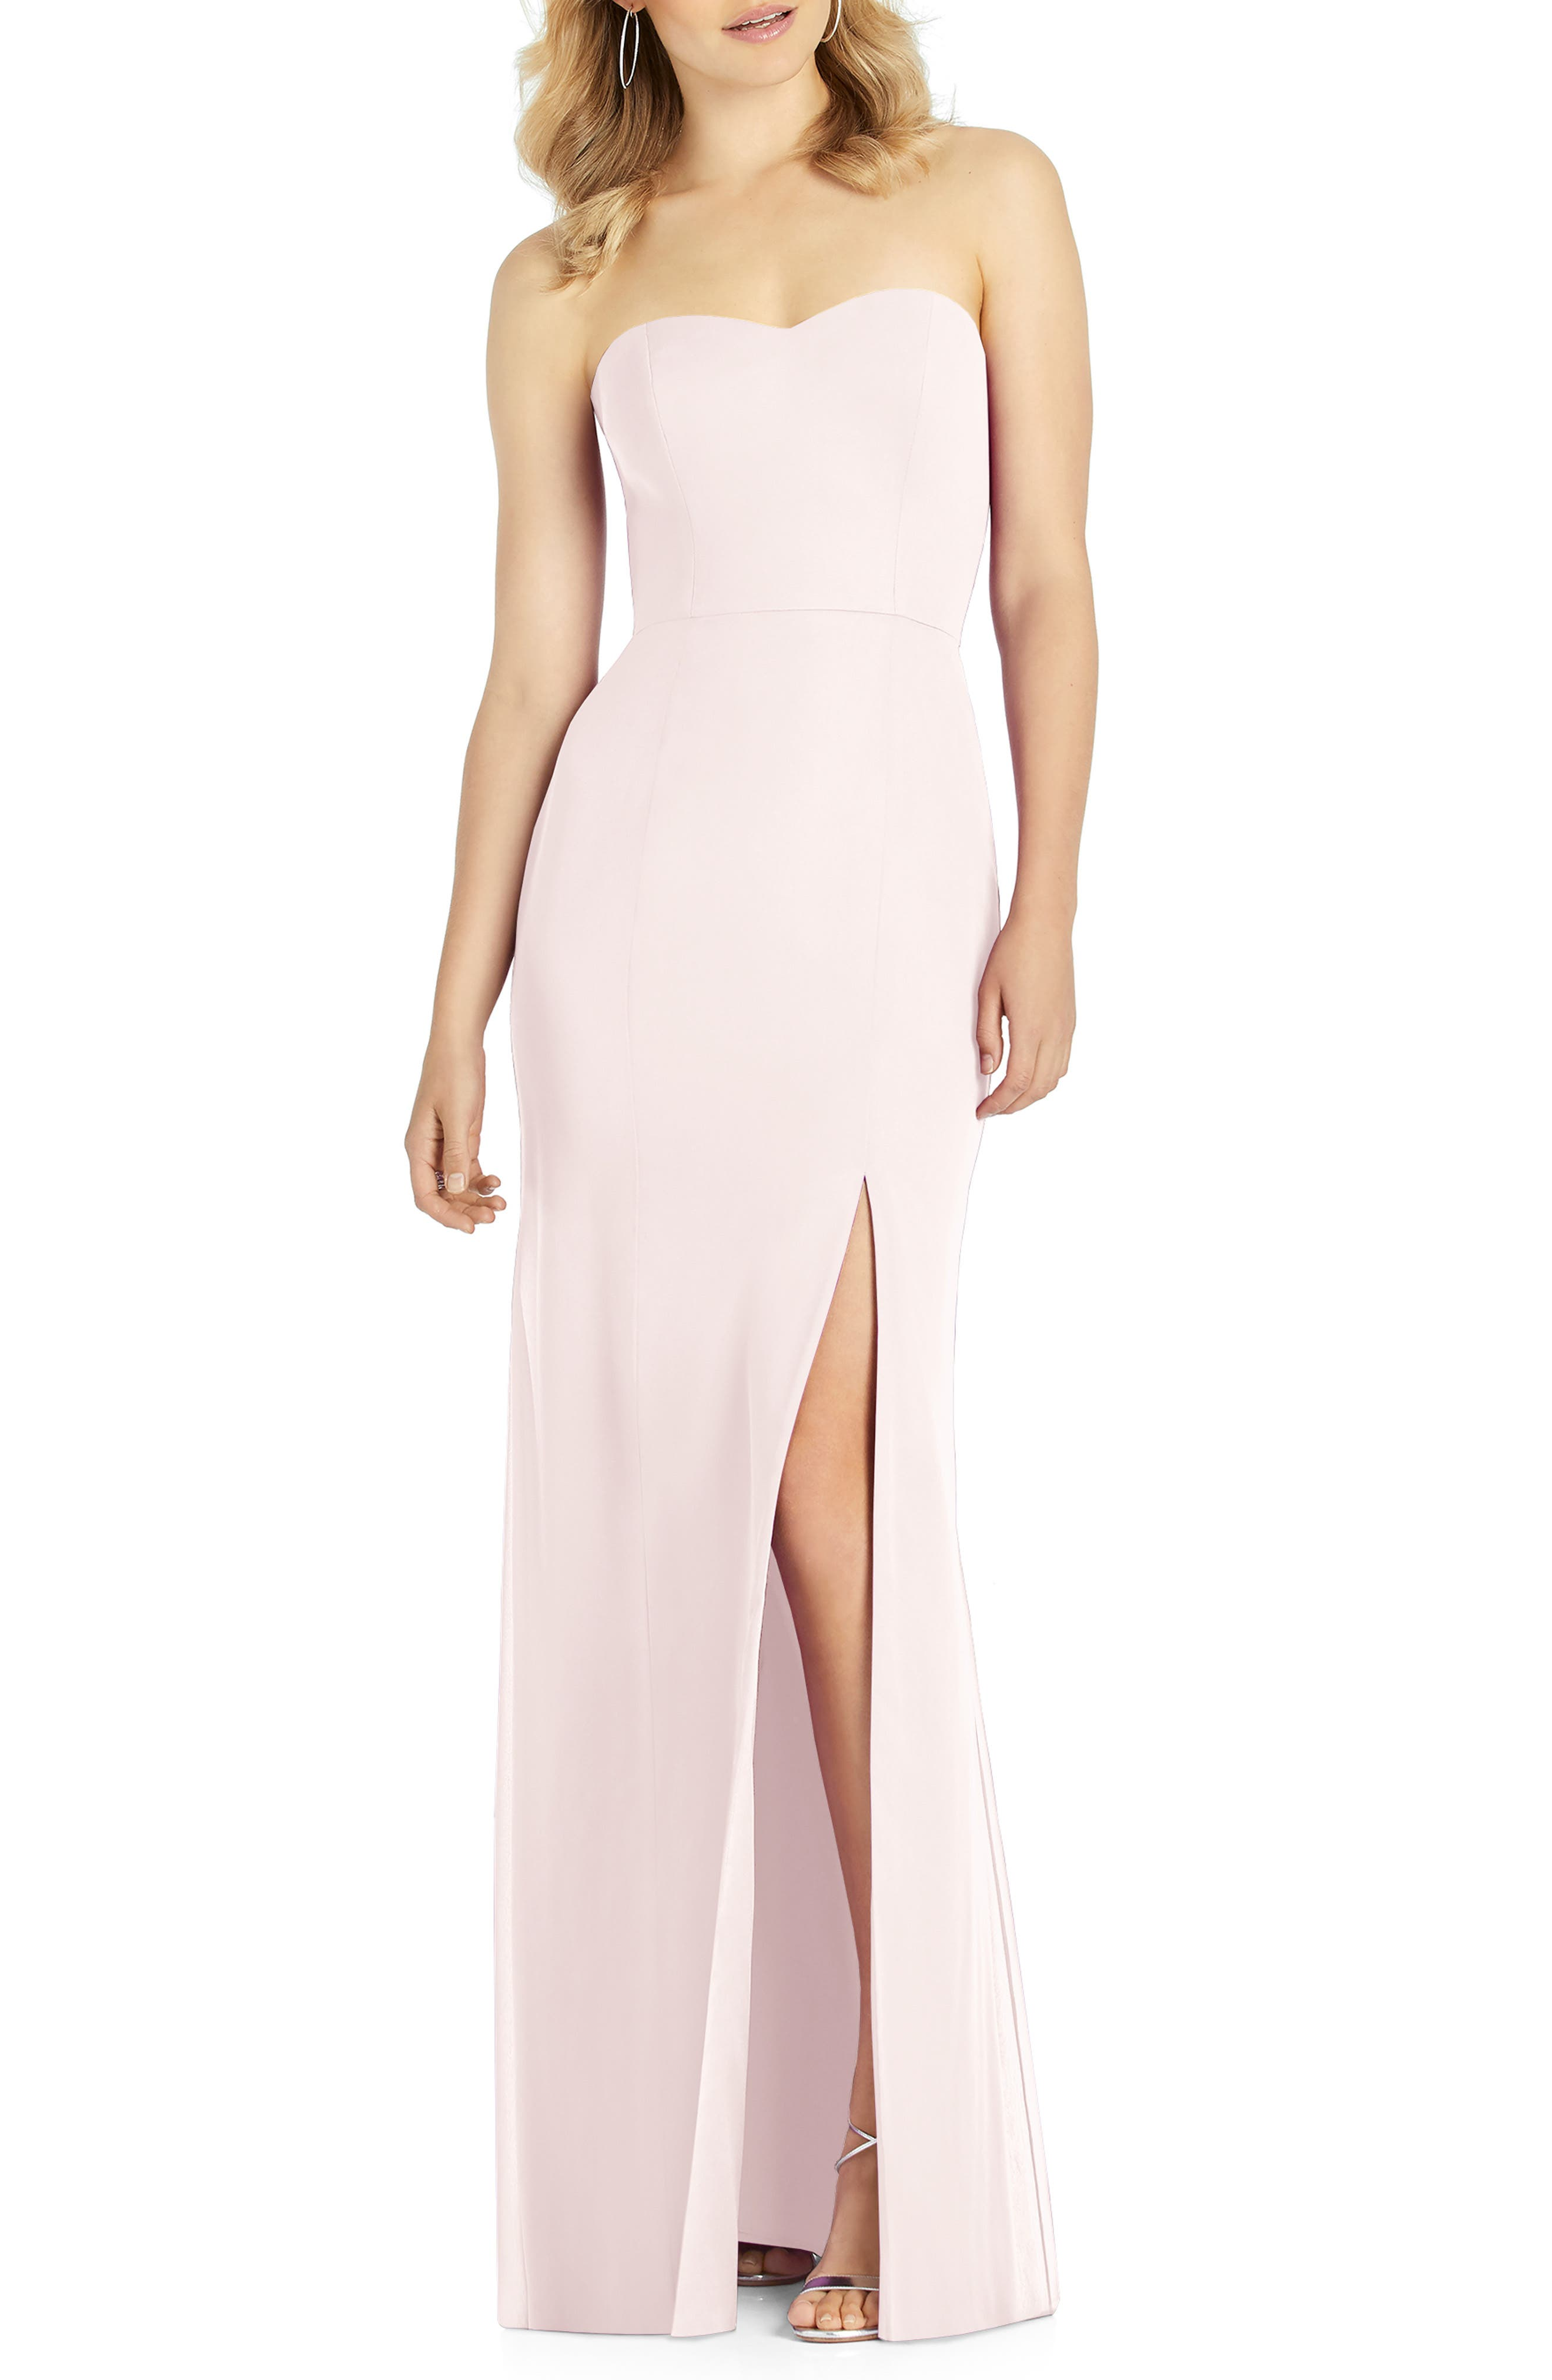 After Six Strapless Chiffon Trumpet Gown, Pink